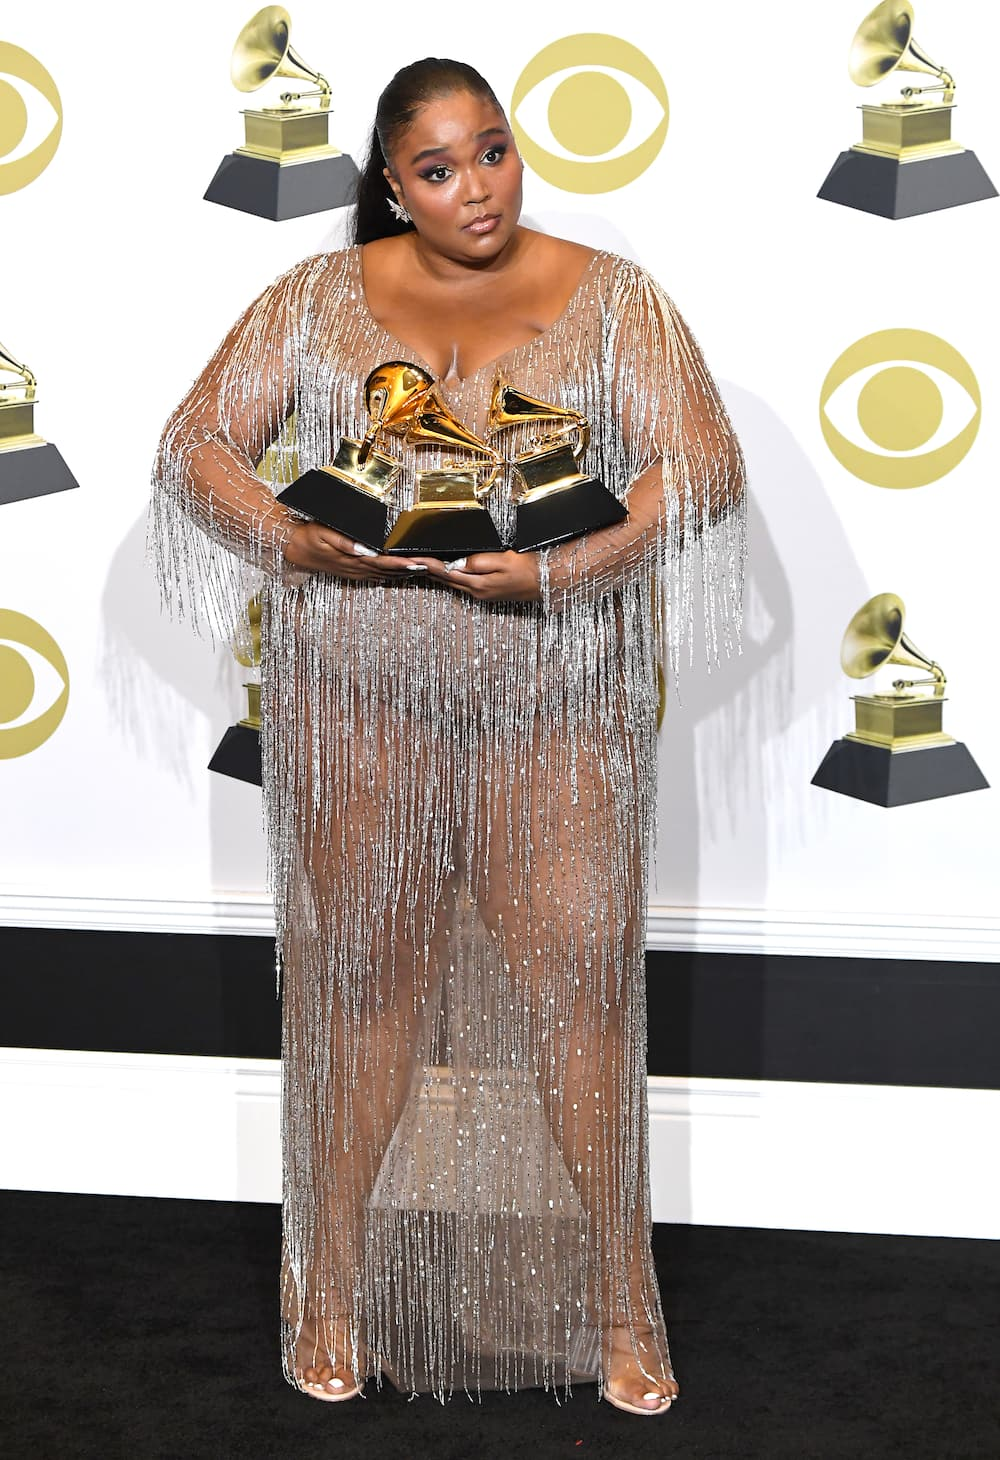 Lizzo's outfit at the Grammys